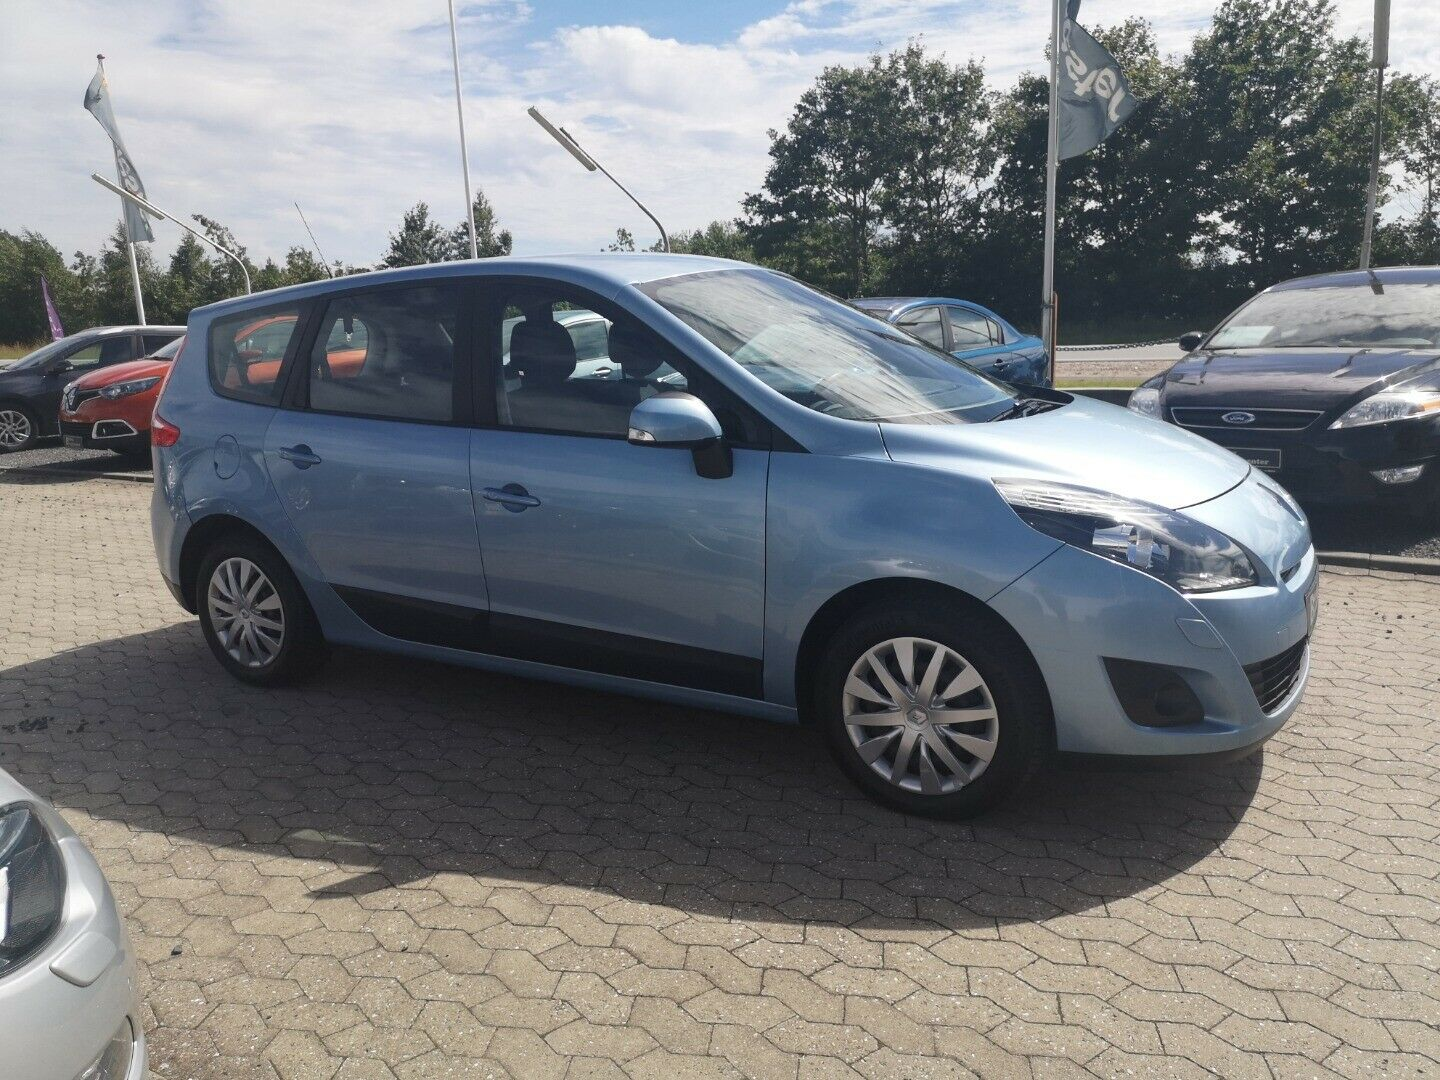 Renault Grand Scenic III 1,4 TCe 130 Expression 7prs 5d - 74.800 kr.